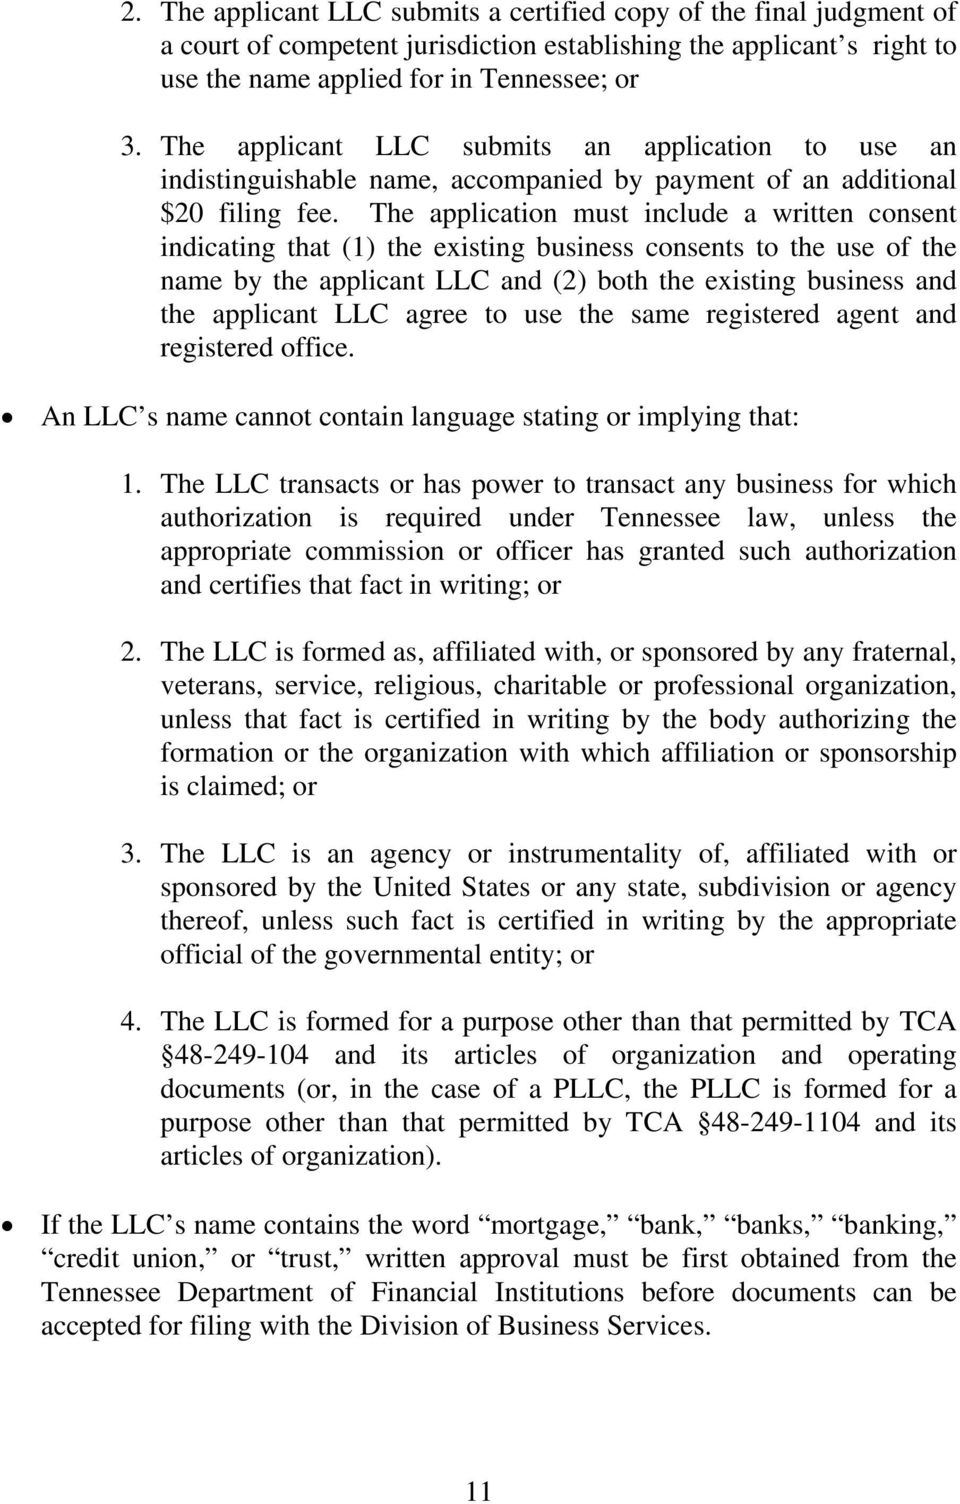 The application must include a written consent indicating that (1) the existing business consents to the use of the name by the applicant LLC and (2) both the existing business and the applicant LLC